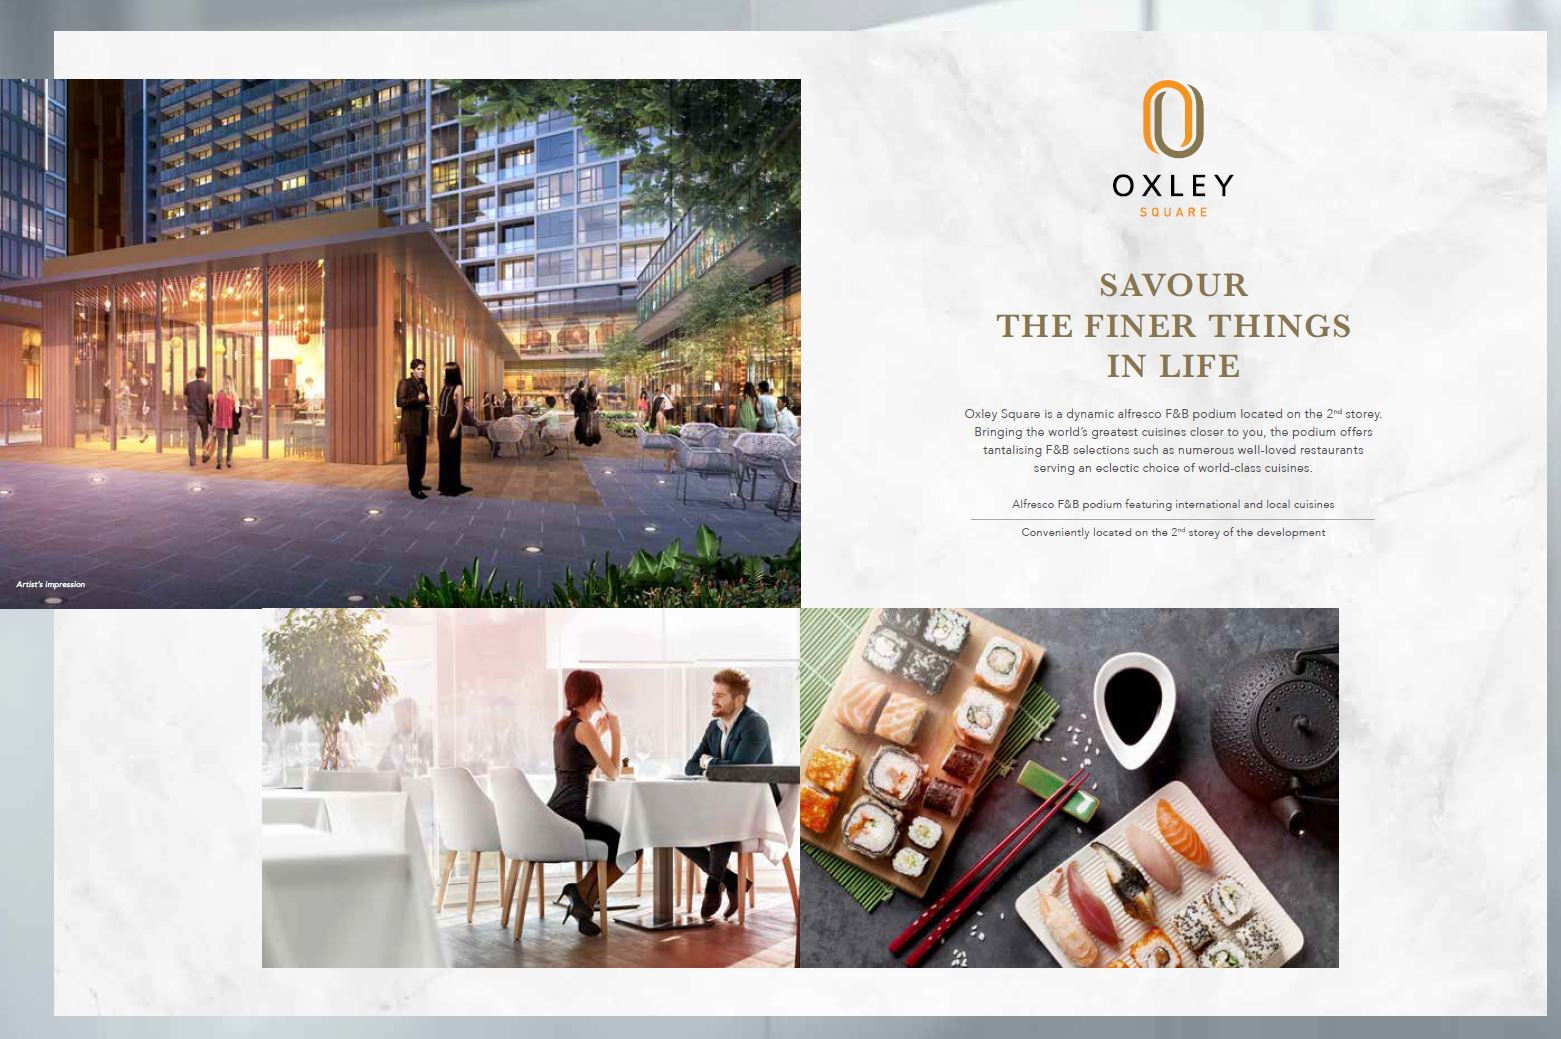 Oxley Convention City Square